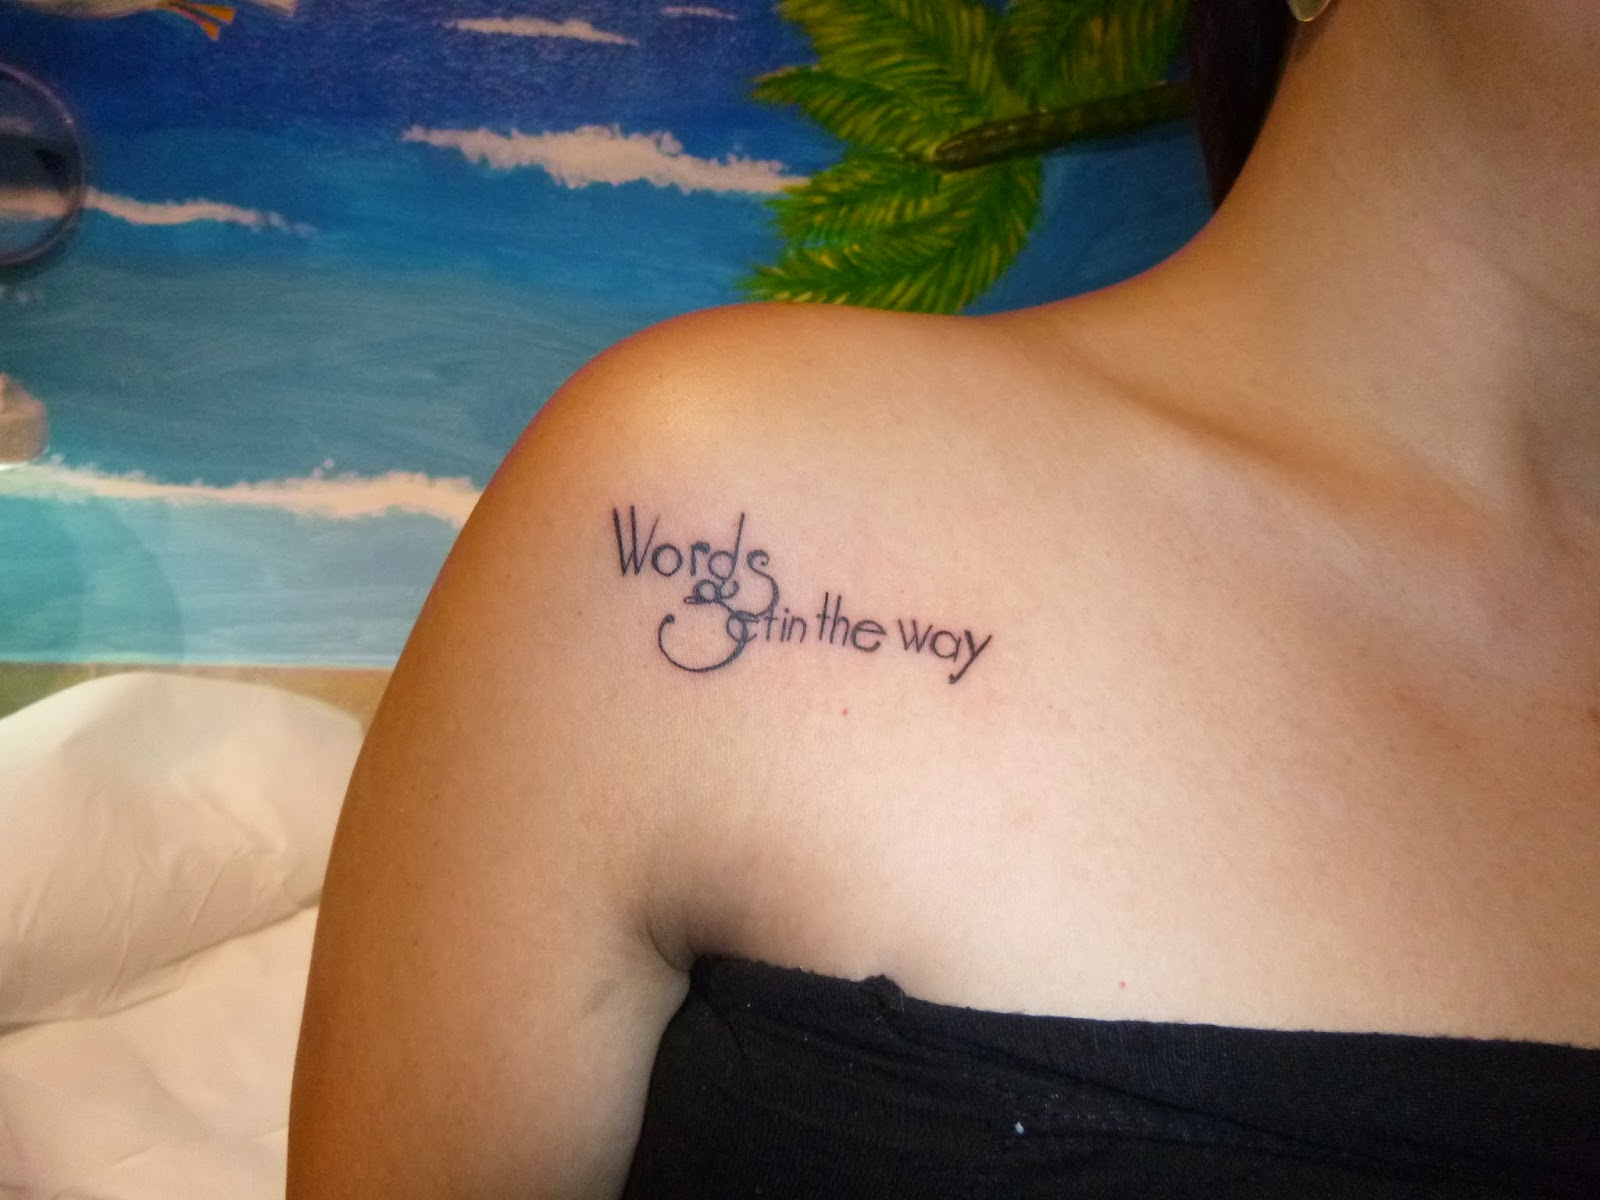 Tattoo Dedicated To Parents Quotes Quotesgram. Motivational Quotes Eating Healthy. Hurt Expectations Quotes. Harry Potter Quotes Page Numbers Sorcerer's Stone. Hurt Quotes On Goodreads. Best Adventure Quotes Of All Time. God Quotes In French. Sad Quotes Yahoo Answers. Summer Quotes Rap Songs